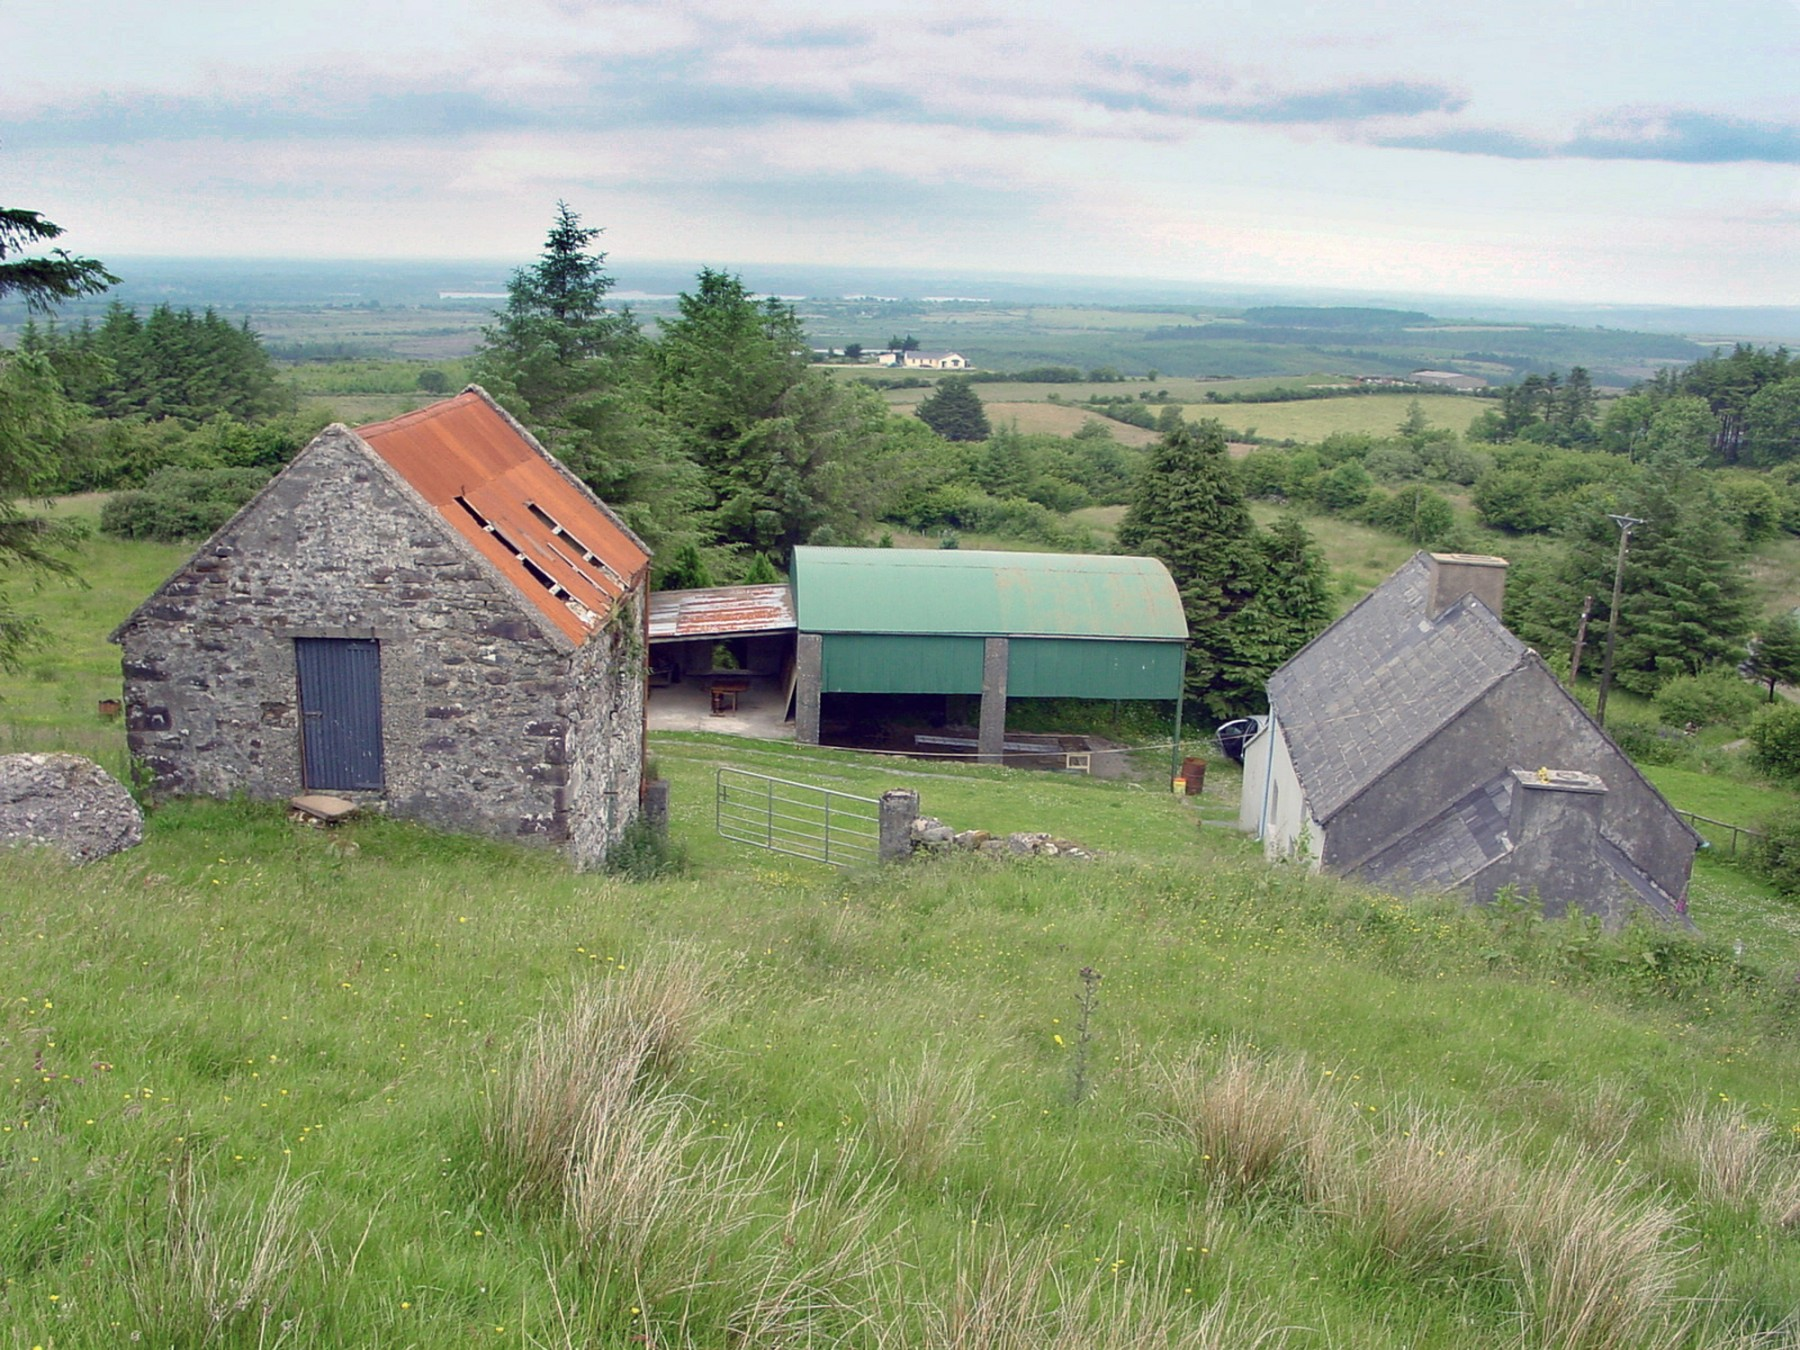 FaHa-Farm-house-barn-County-Clare-Ireland-residential-home-rural-timber-zinc-Jamie-Fobert-Architects-development-site-2